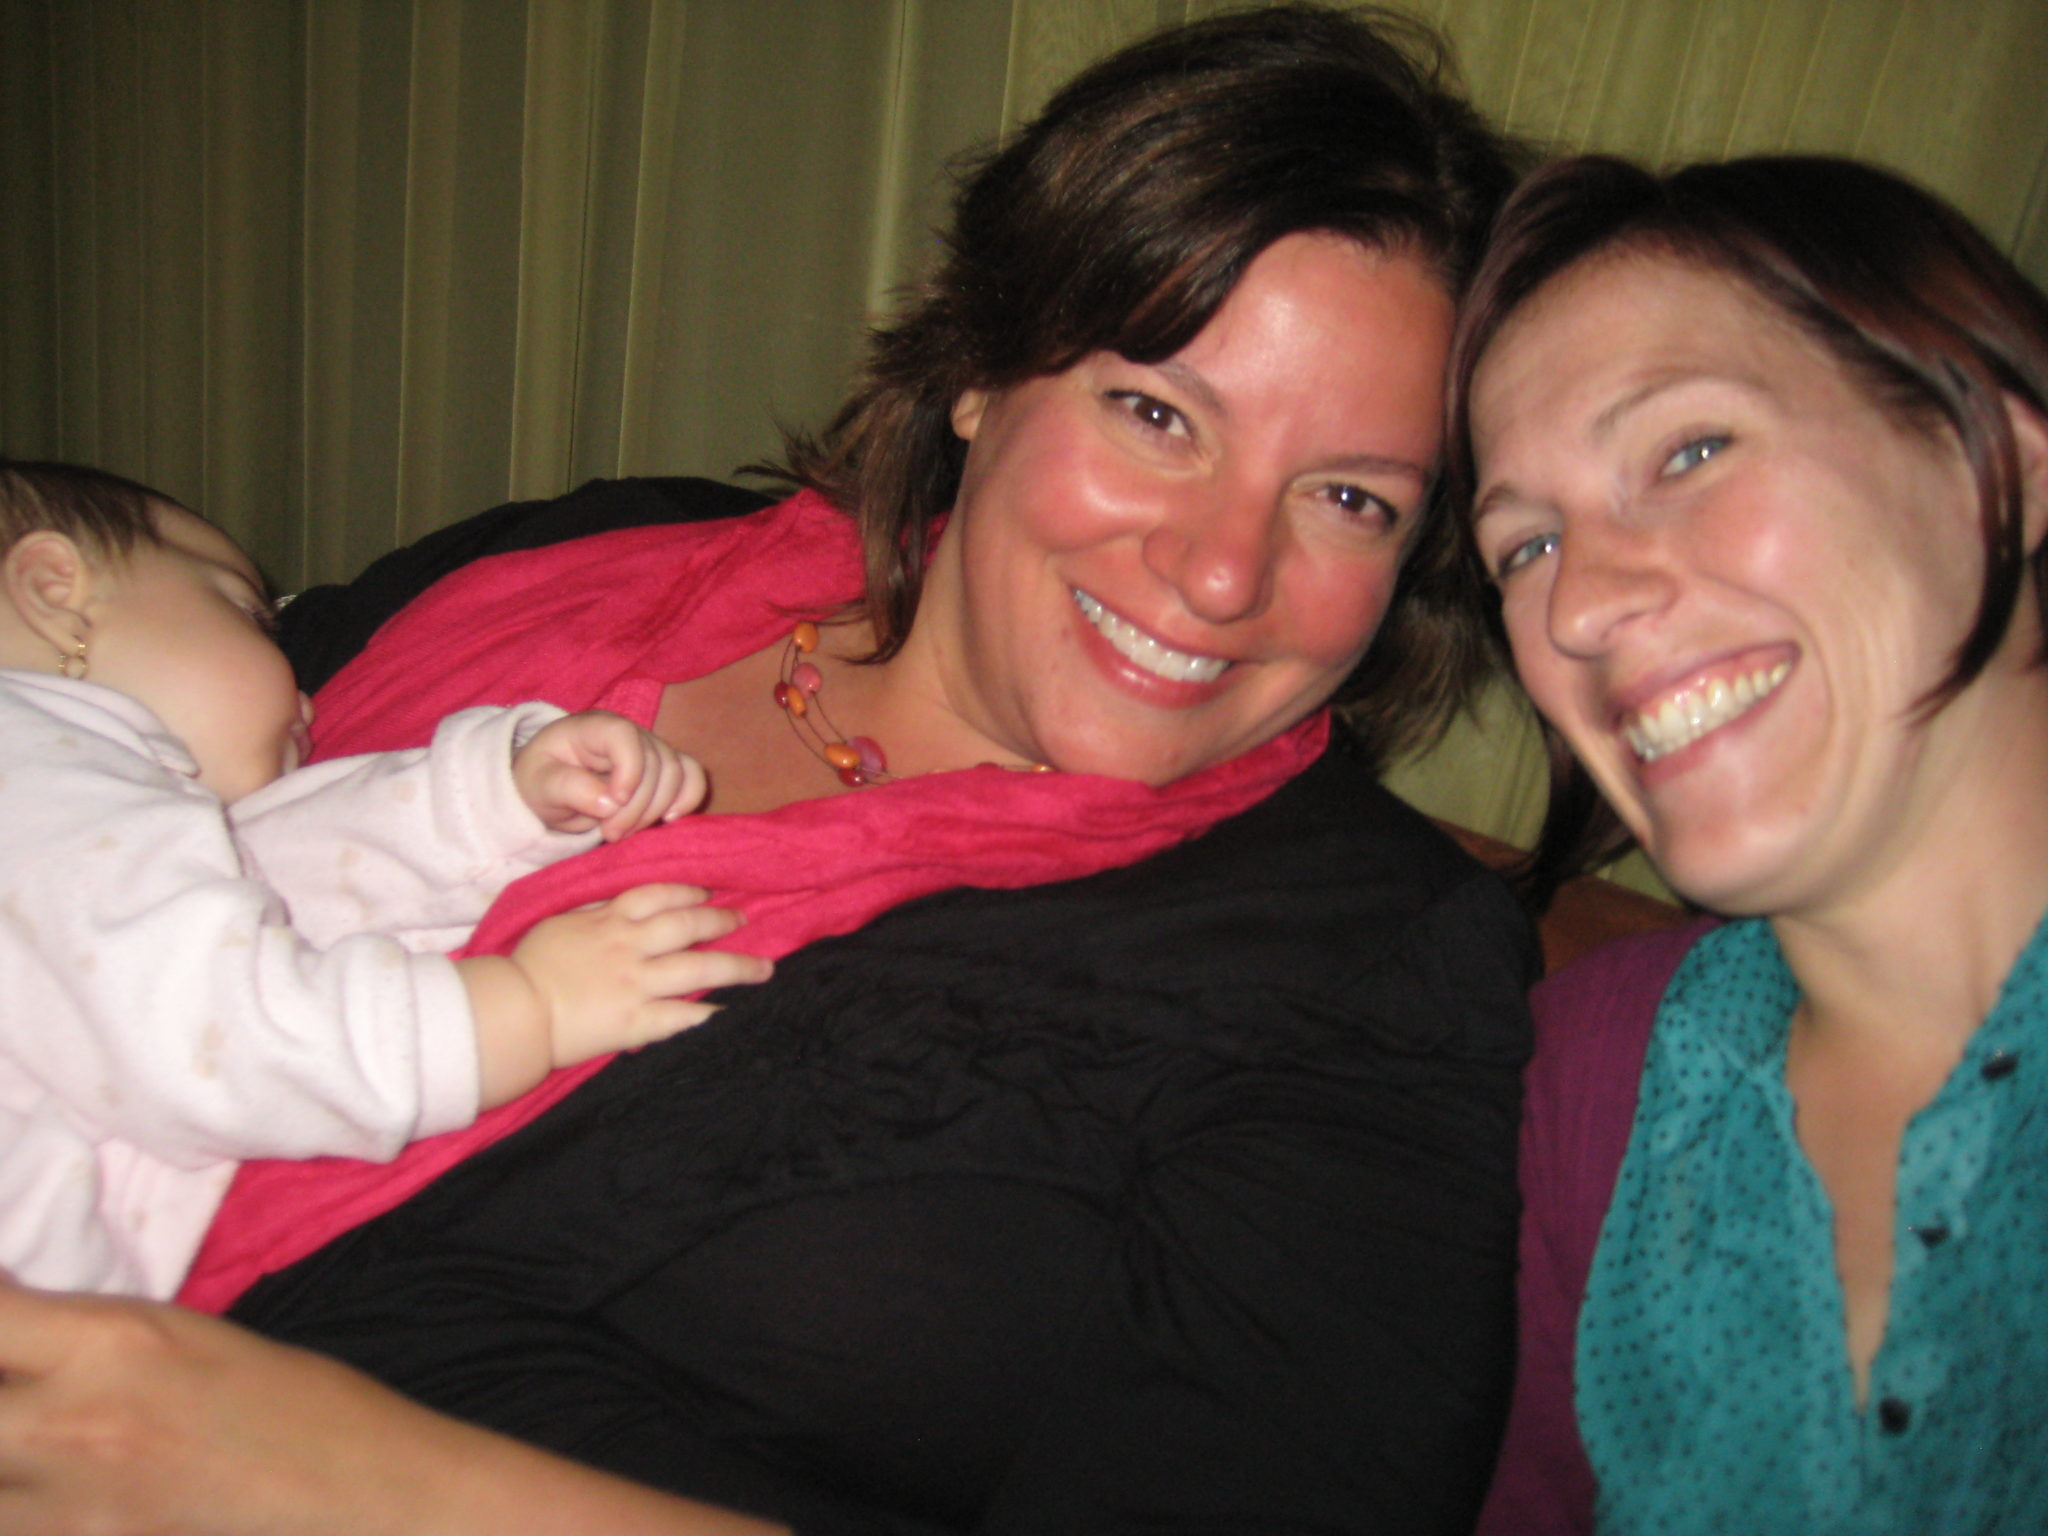 The wonderful folks at El Nomad!  Here I am with Rebecca Adams - and I got to hold her sleeping baby too...awwww!